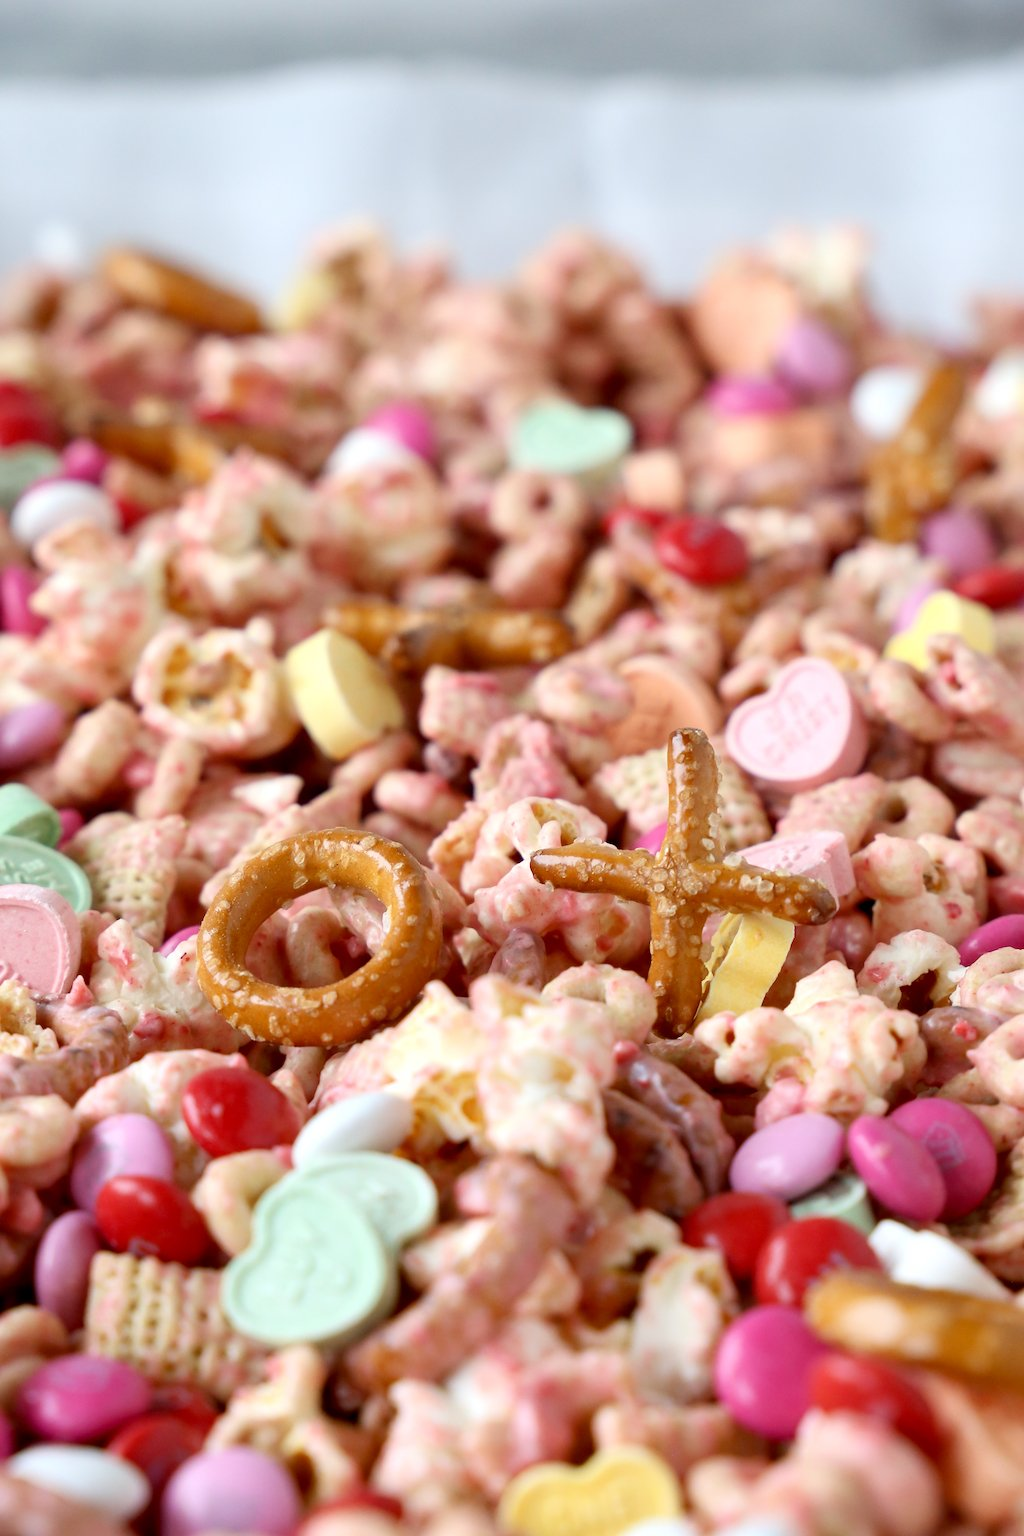 a sheet pan of snack mix made of chex, cheerios, popcorn, pretzels, m&m's and conversation hearts